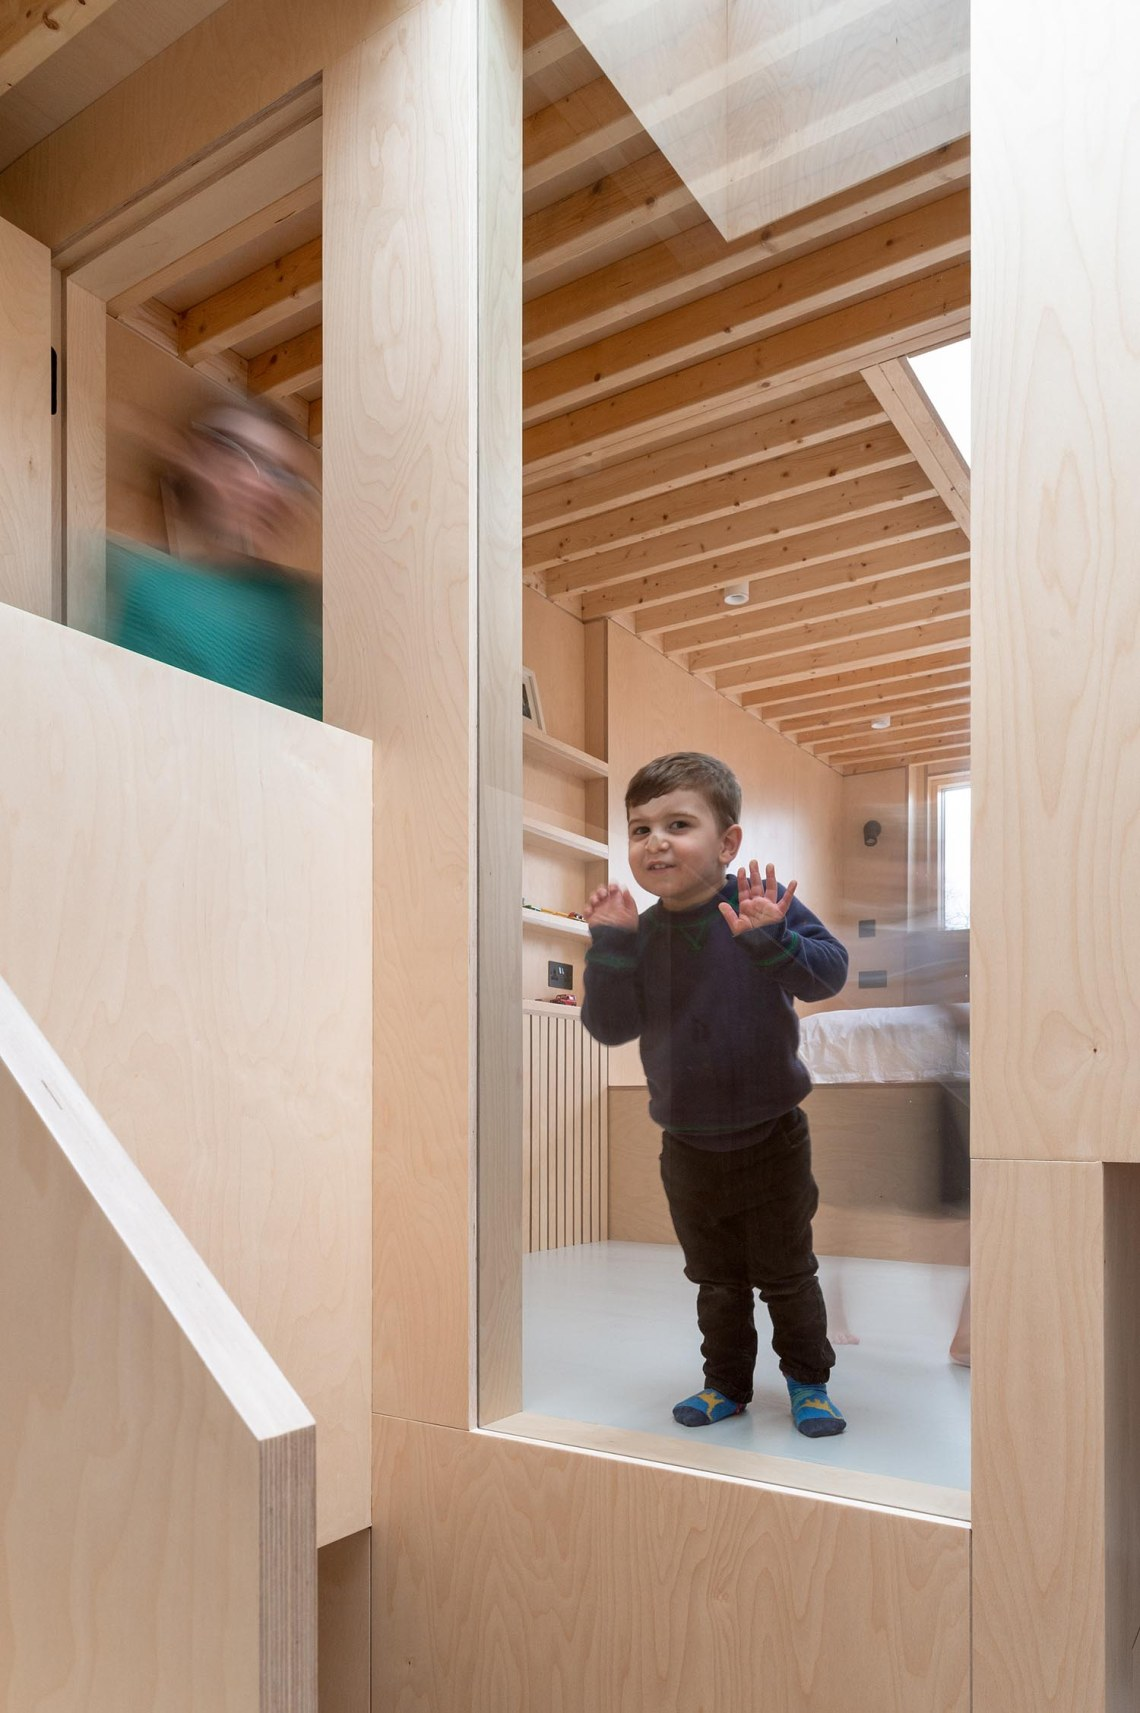 BVDS Architects Two and a half story house window ply exposed joists child room loft extension